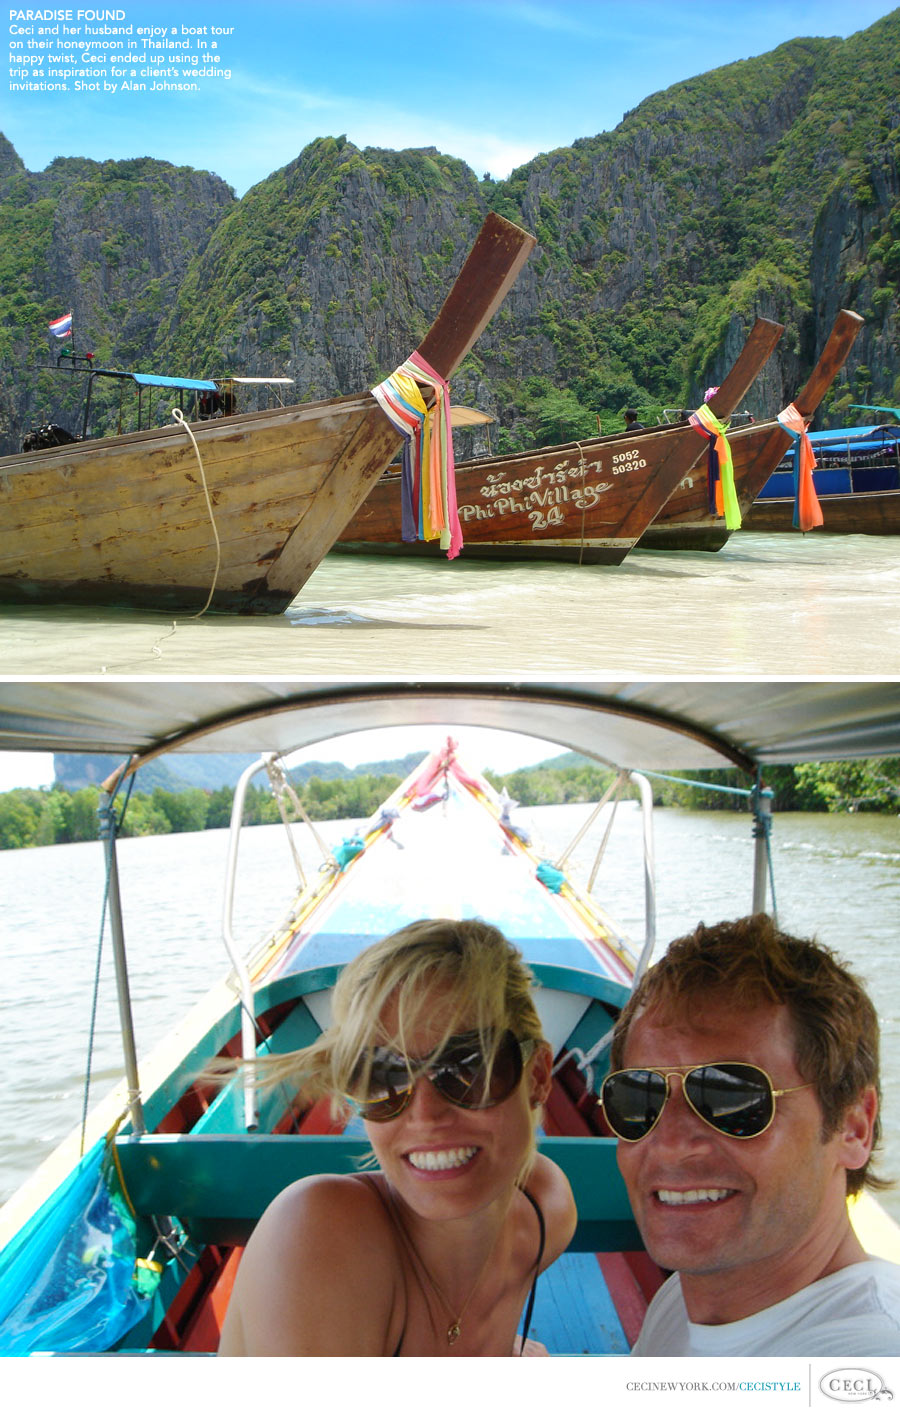 Ceci Johnson of Ceci New York - PARADISE FOUND: Ceci and her husband enjoy a boat tour on their honeymoon in Thailand. In a happy twist, Ceci ended up using the trip as inspiration for a client's wedding invitations. Shot by Alan Johnson.